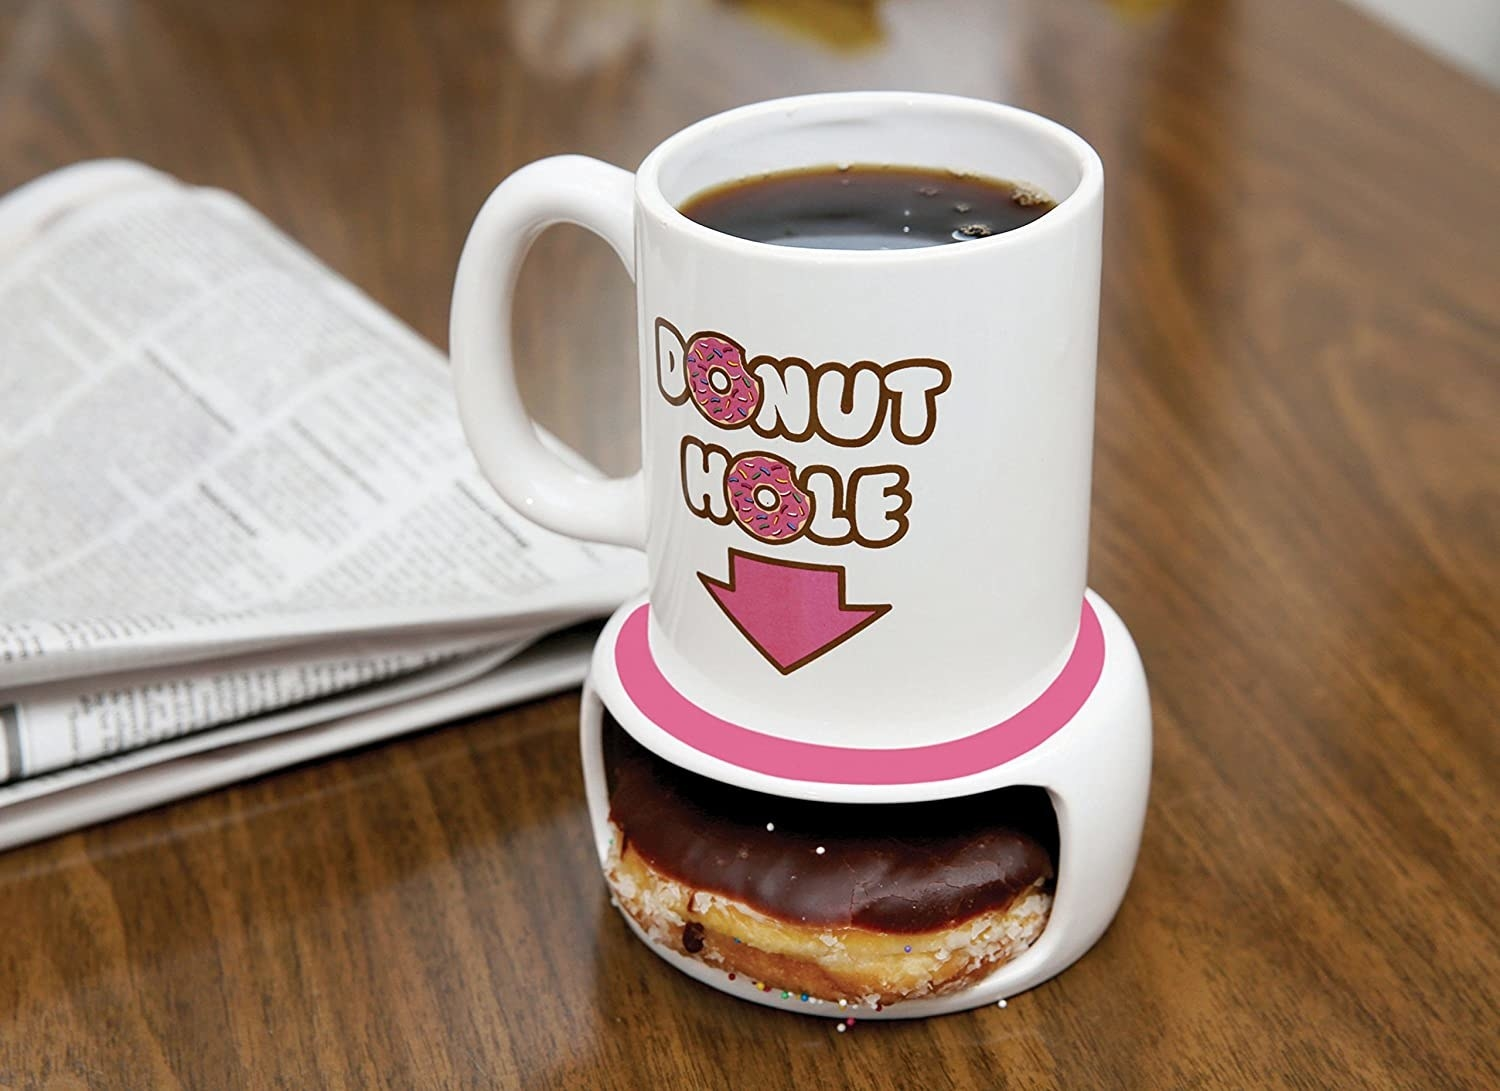 A donut in the bottom of the mug